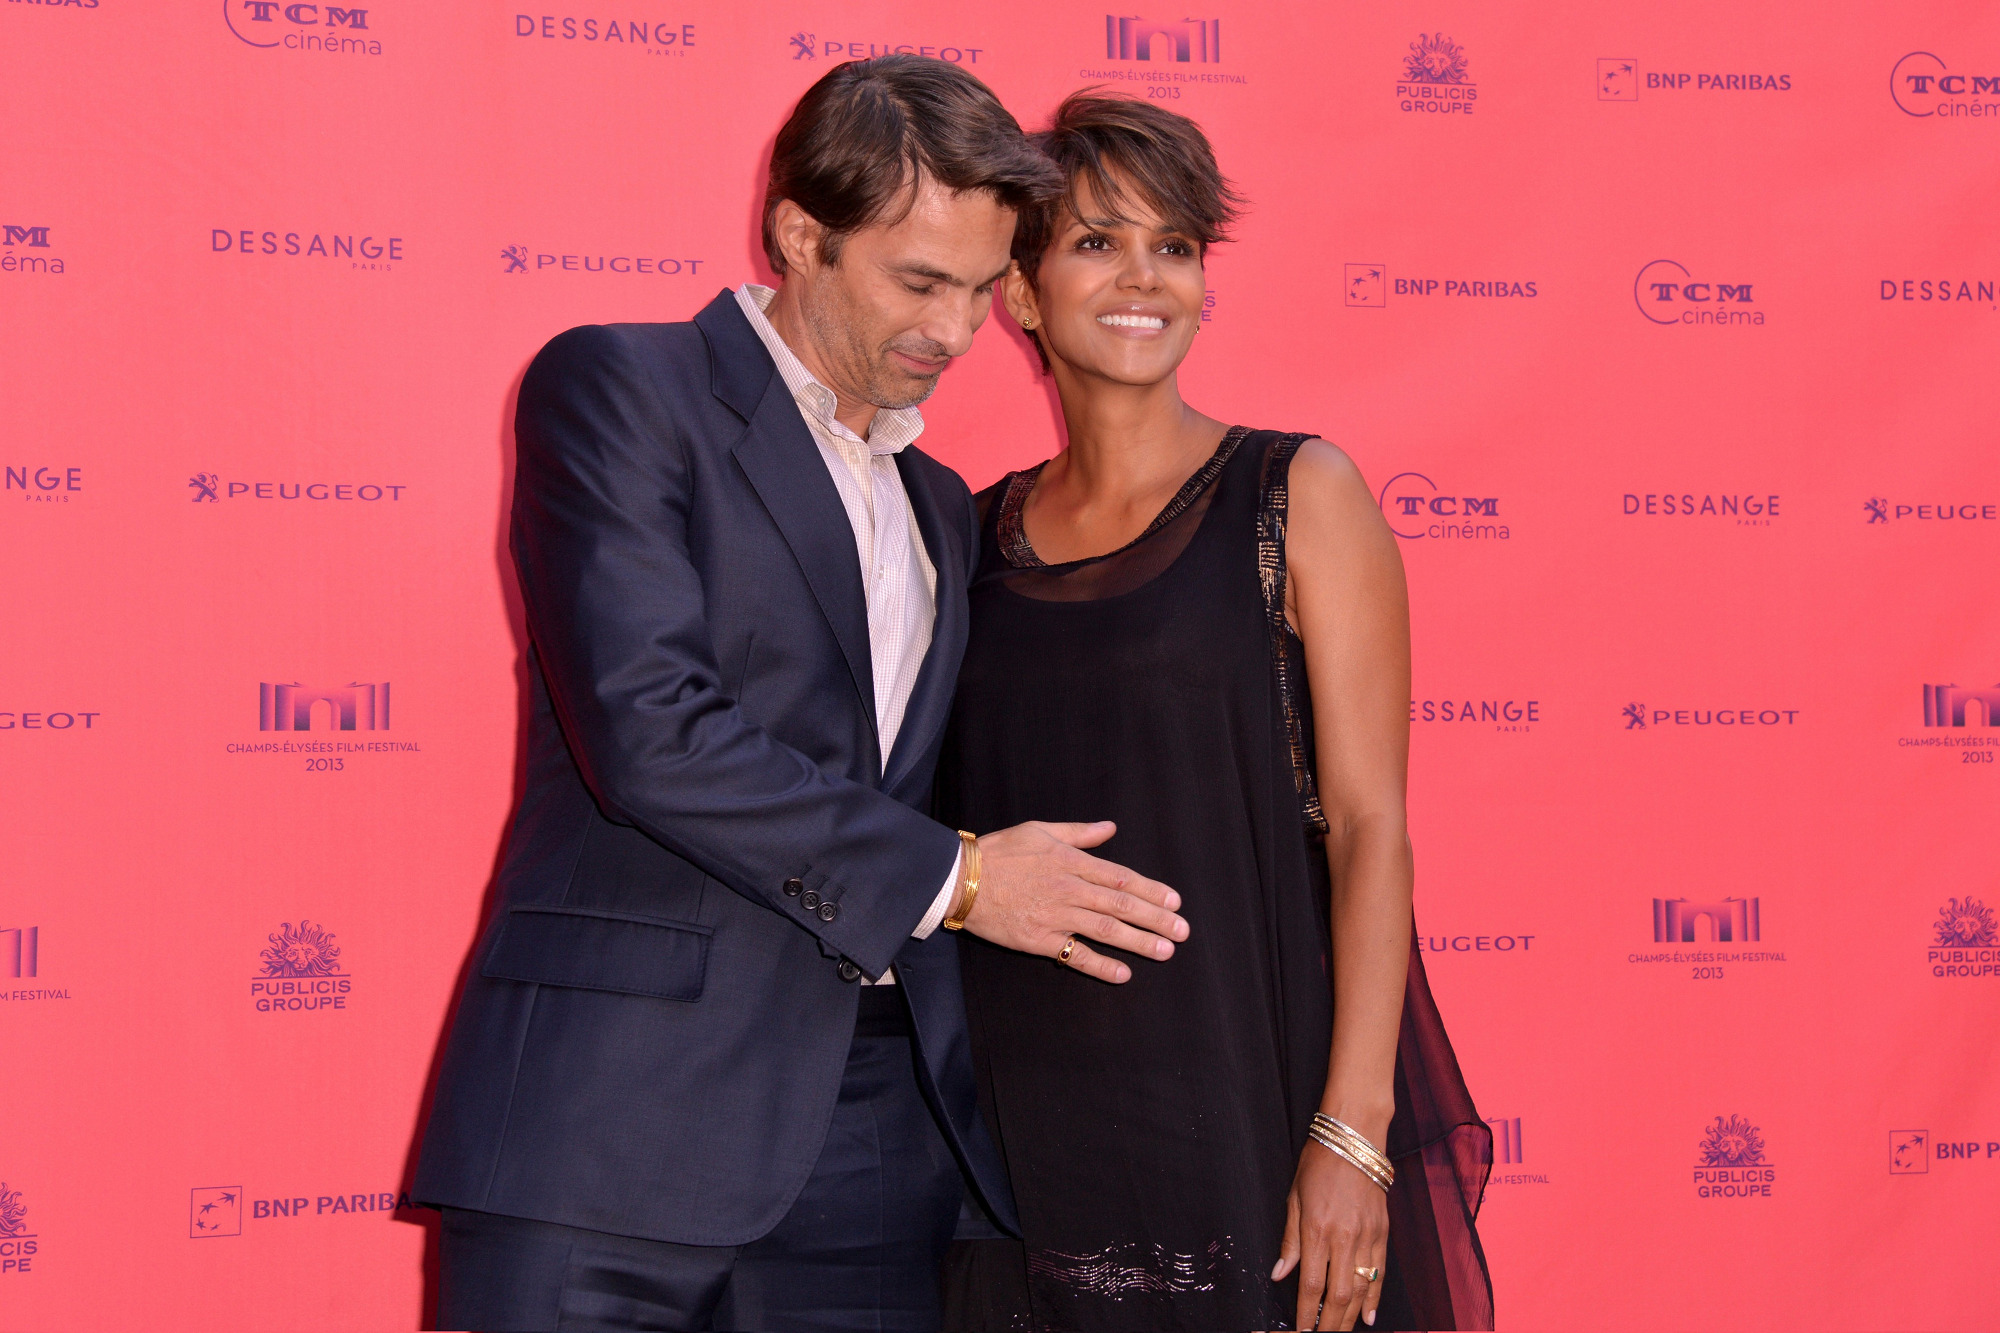 Le mariage Halle Berry